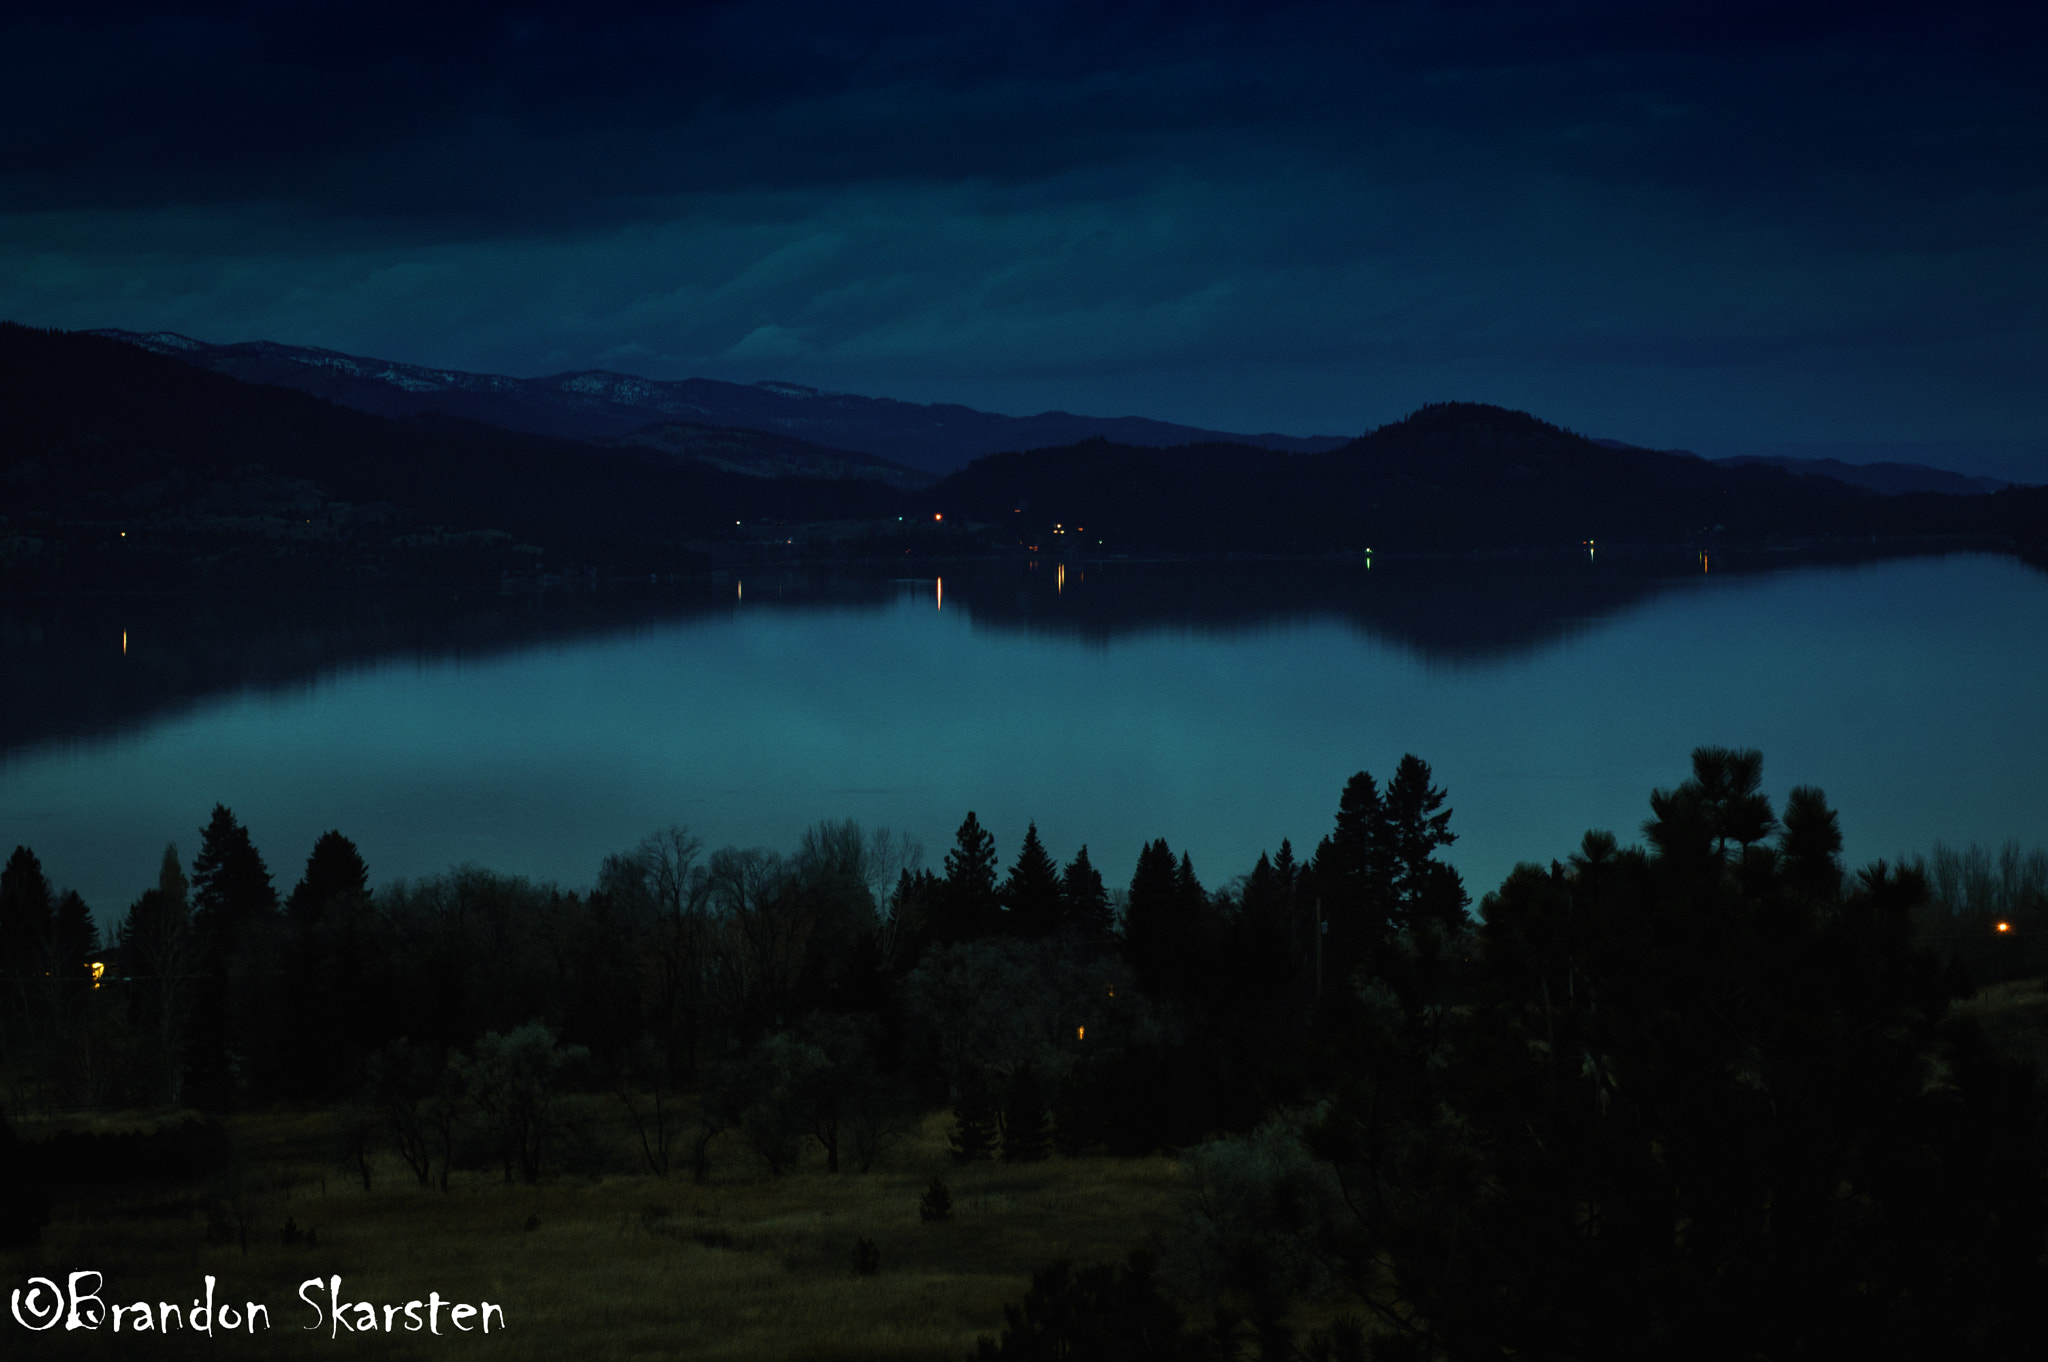 Photograph Flathead Lake at Night, MT by Brandon Skarsten on 500px